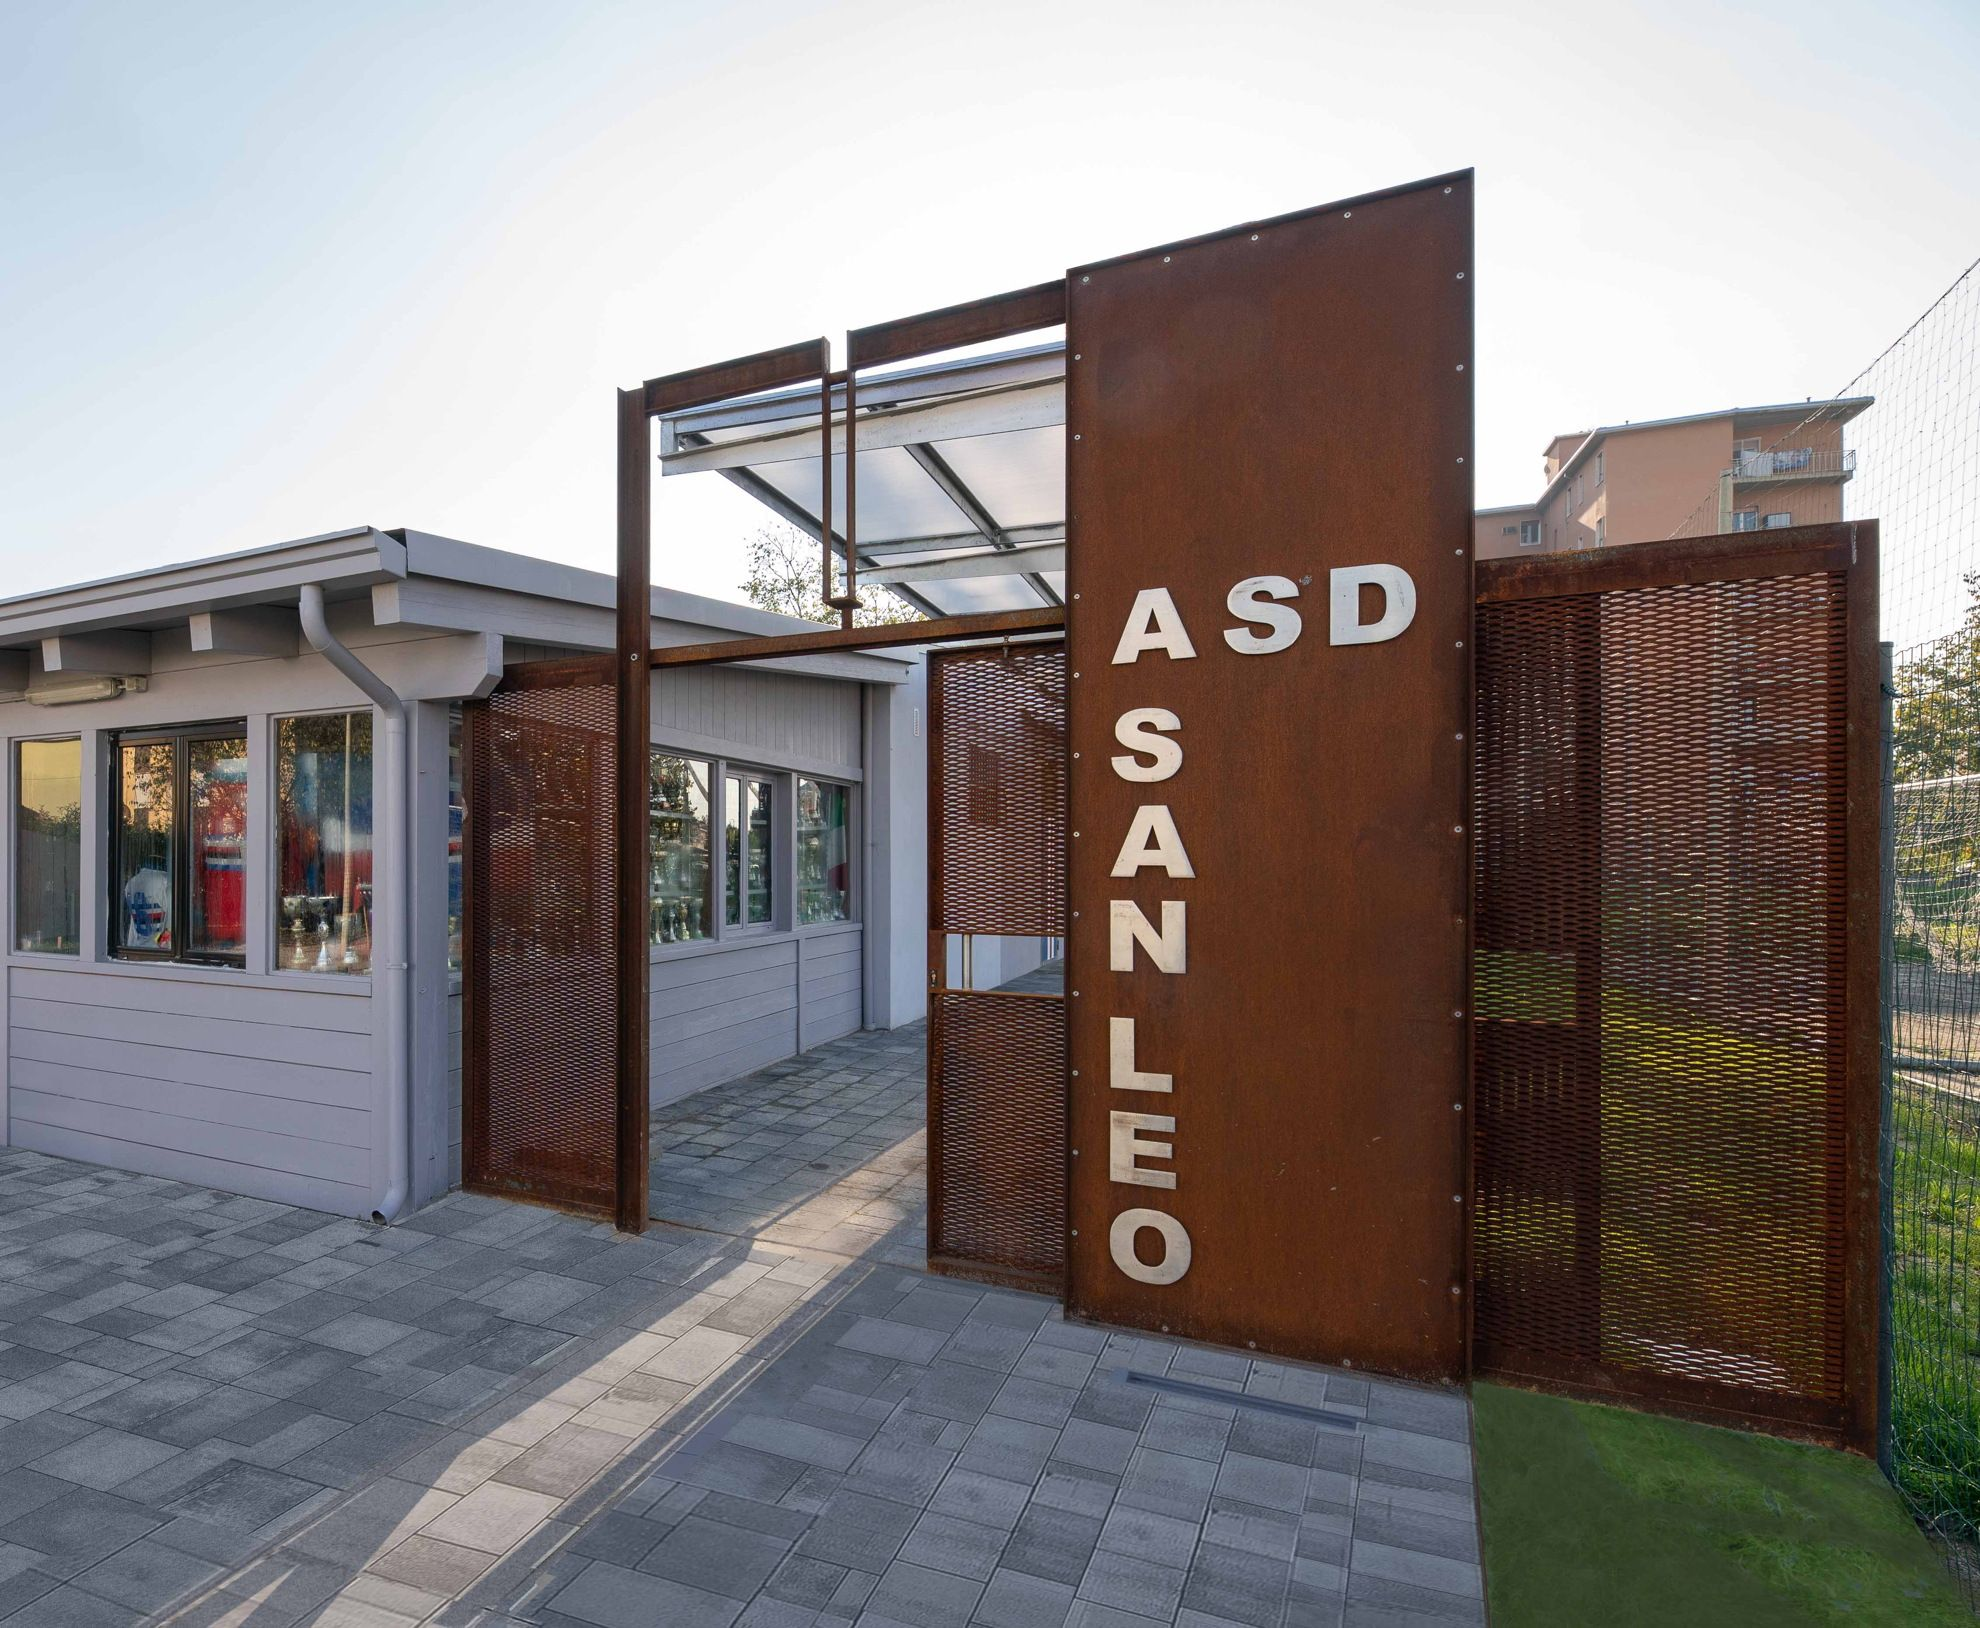 A landmark gateway for a renovation in Parma